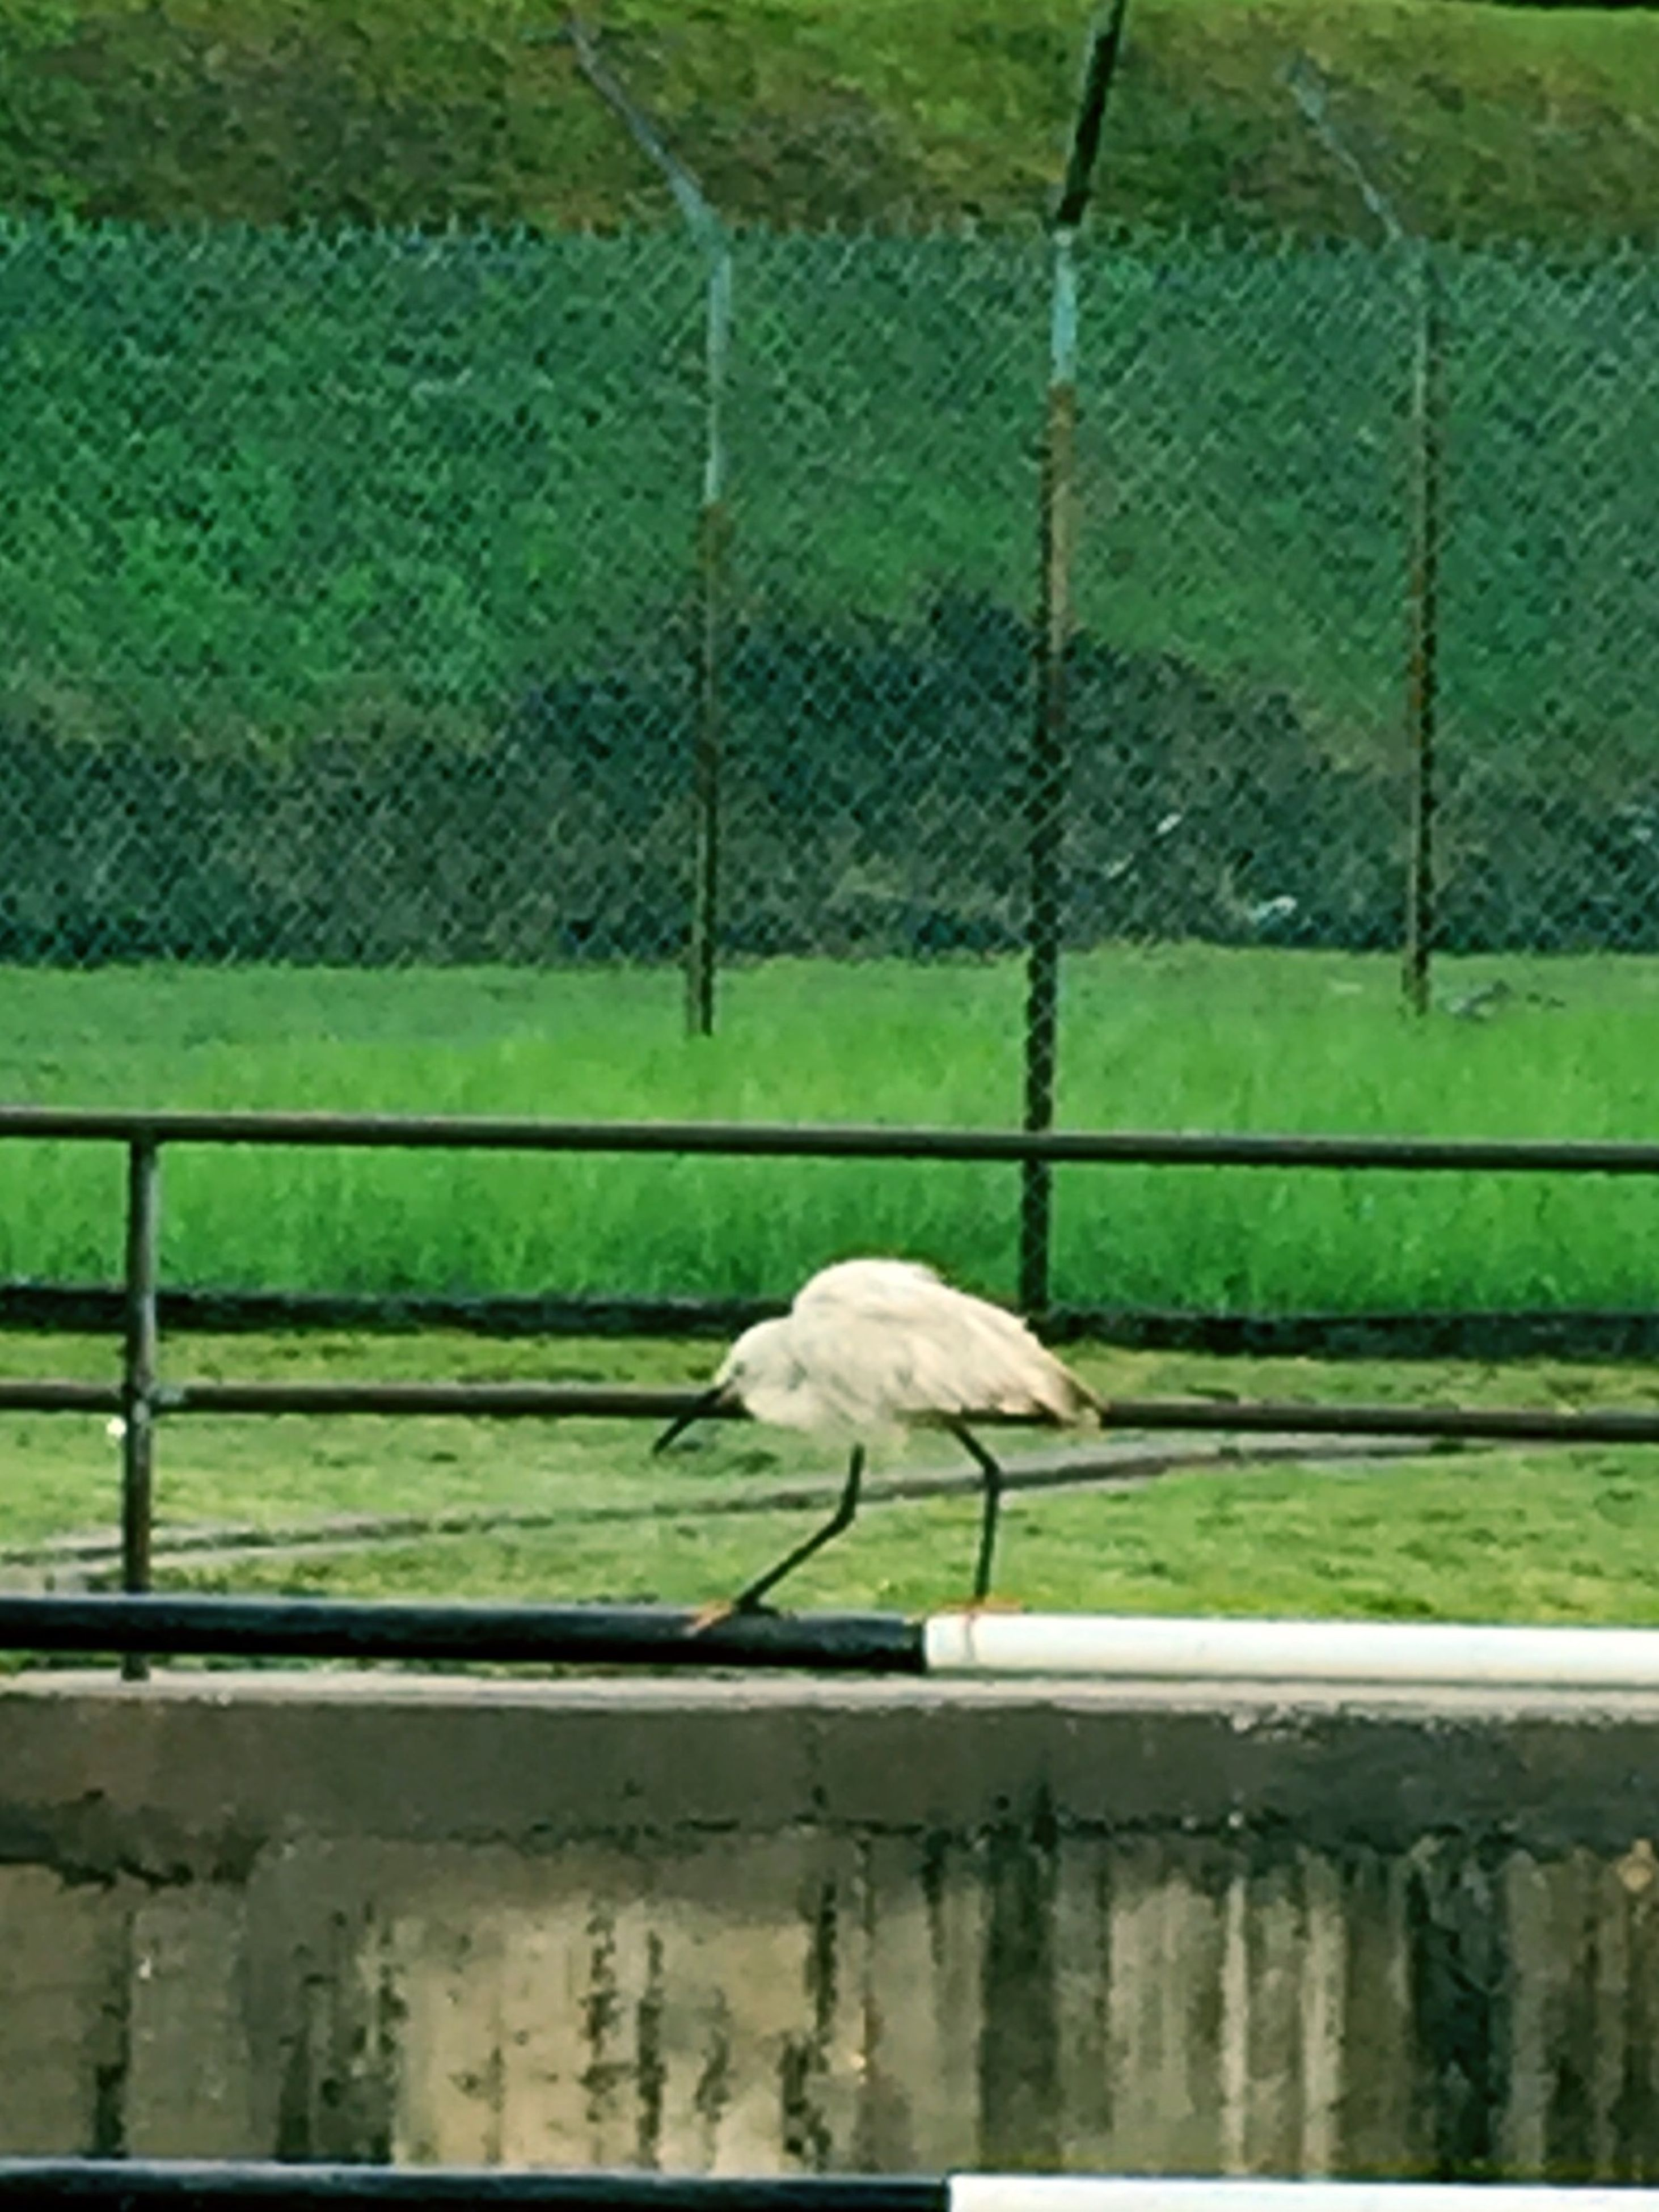 animal themes, bird, animals in the wild, wildlife, one animal, fence, green color, perching, full length, nature, grass, side view, outdoors, white color, no people, day, beak, railing, zoology, beauty in nature